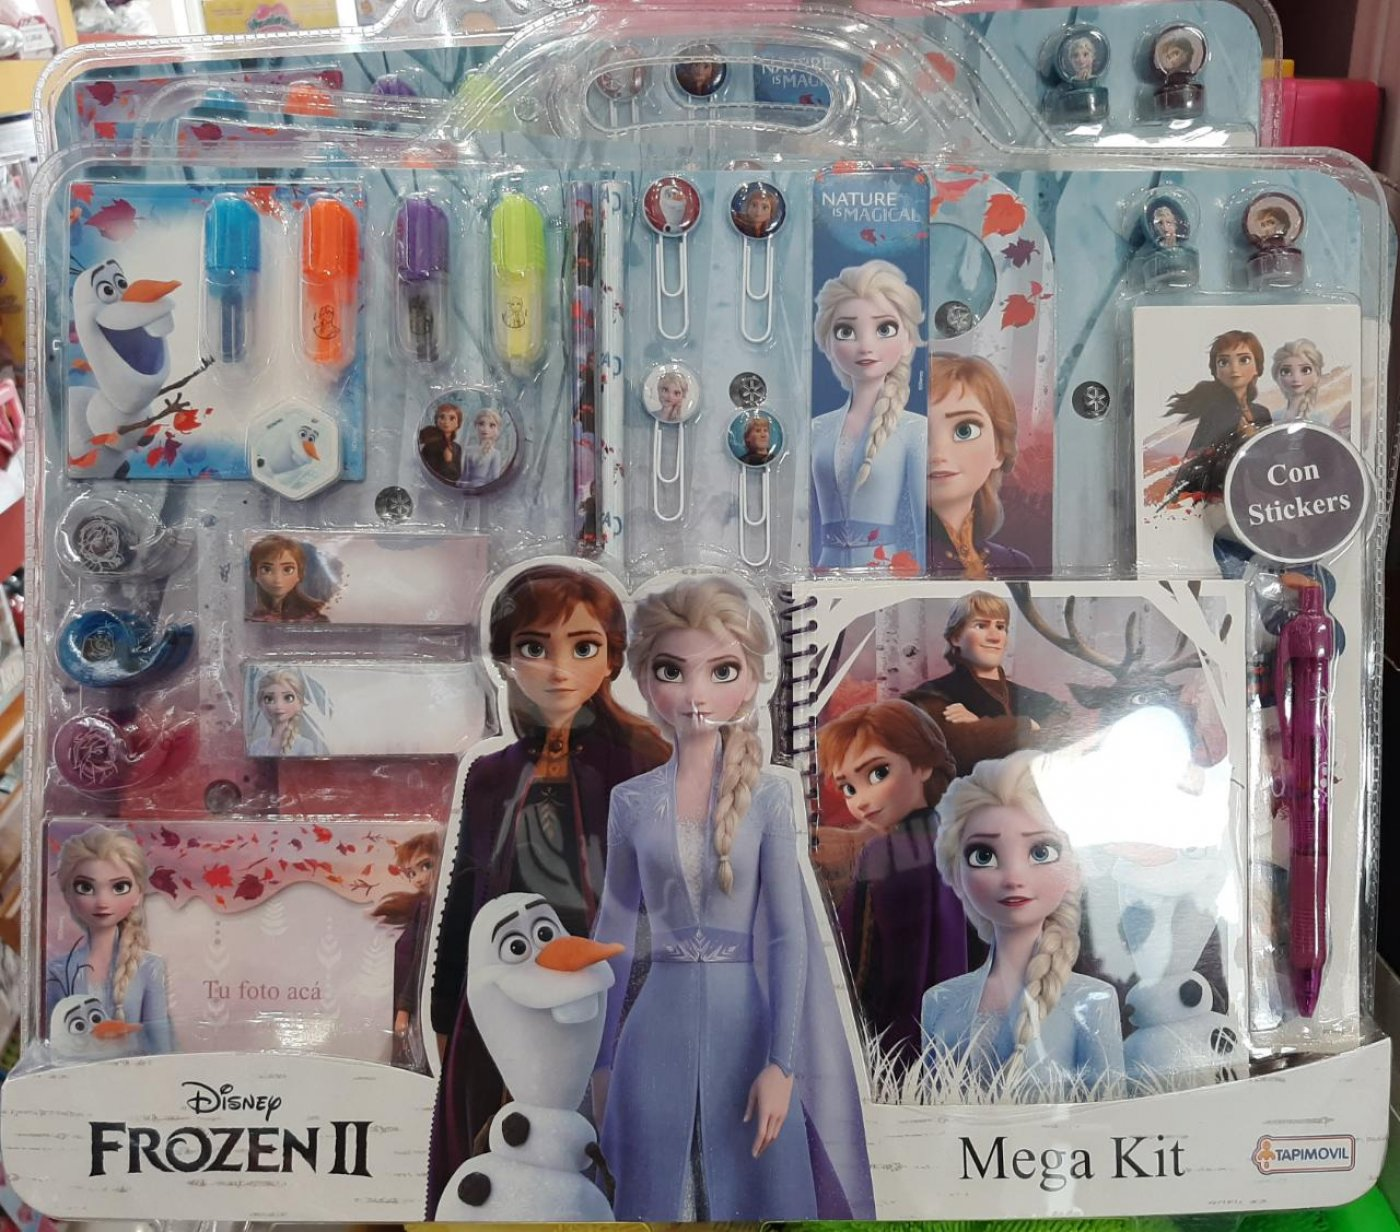 Frozen II mega kit